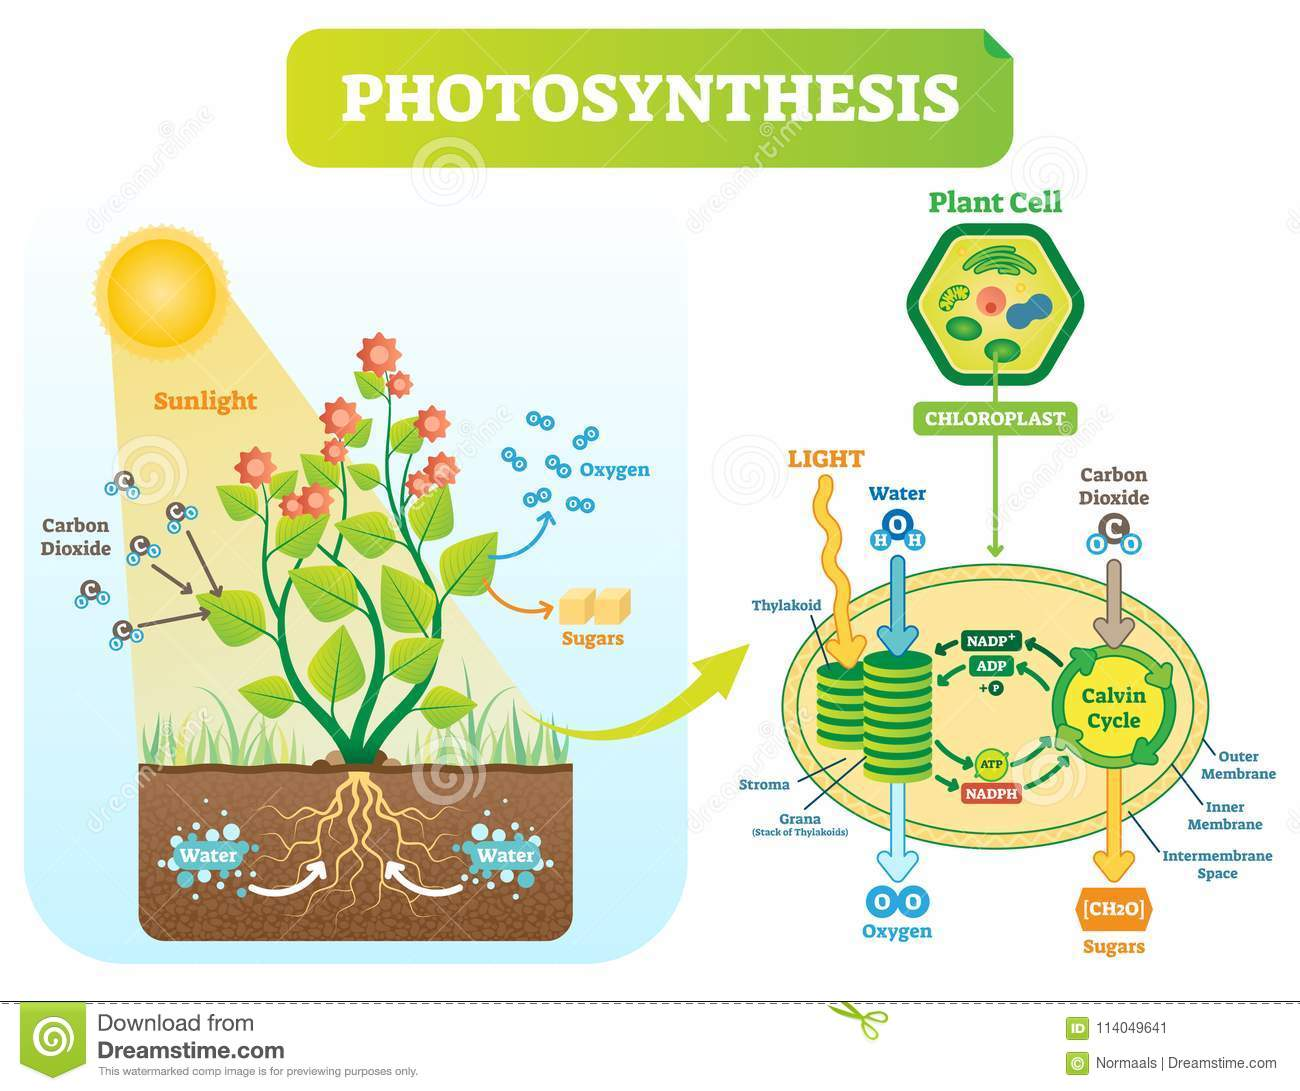 Photosynthesis biological vector illustration diagram with plan cell download comp ccuart Choice Image